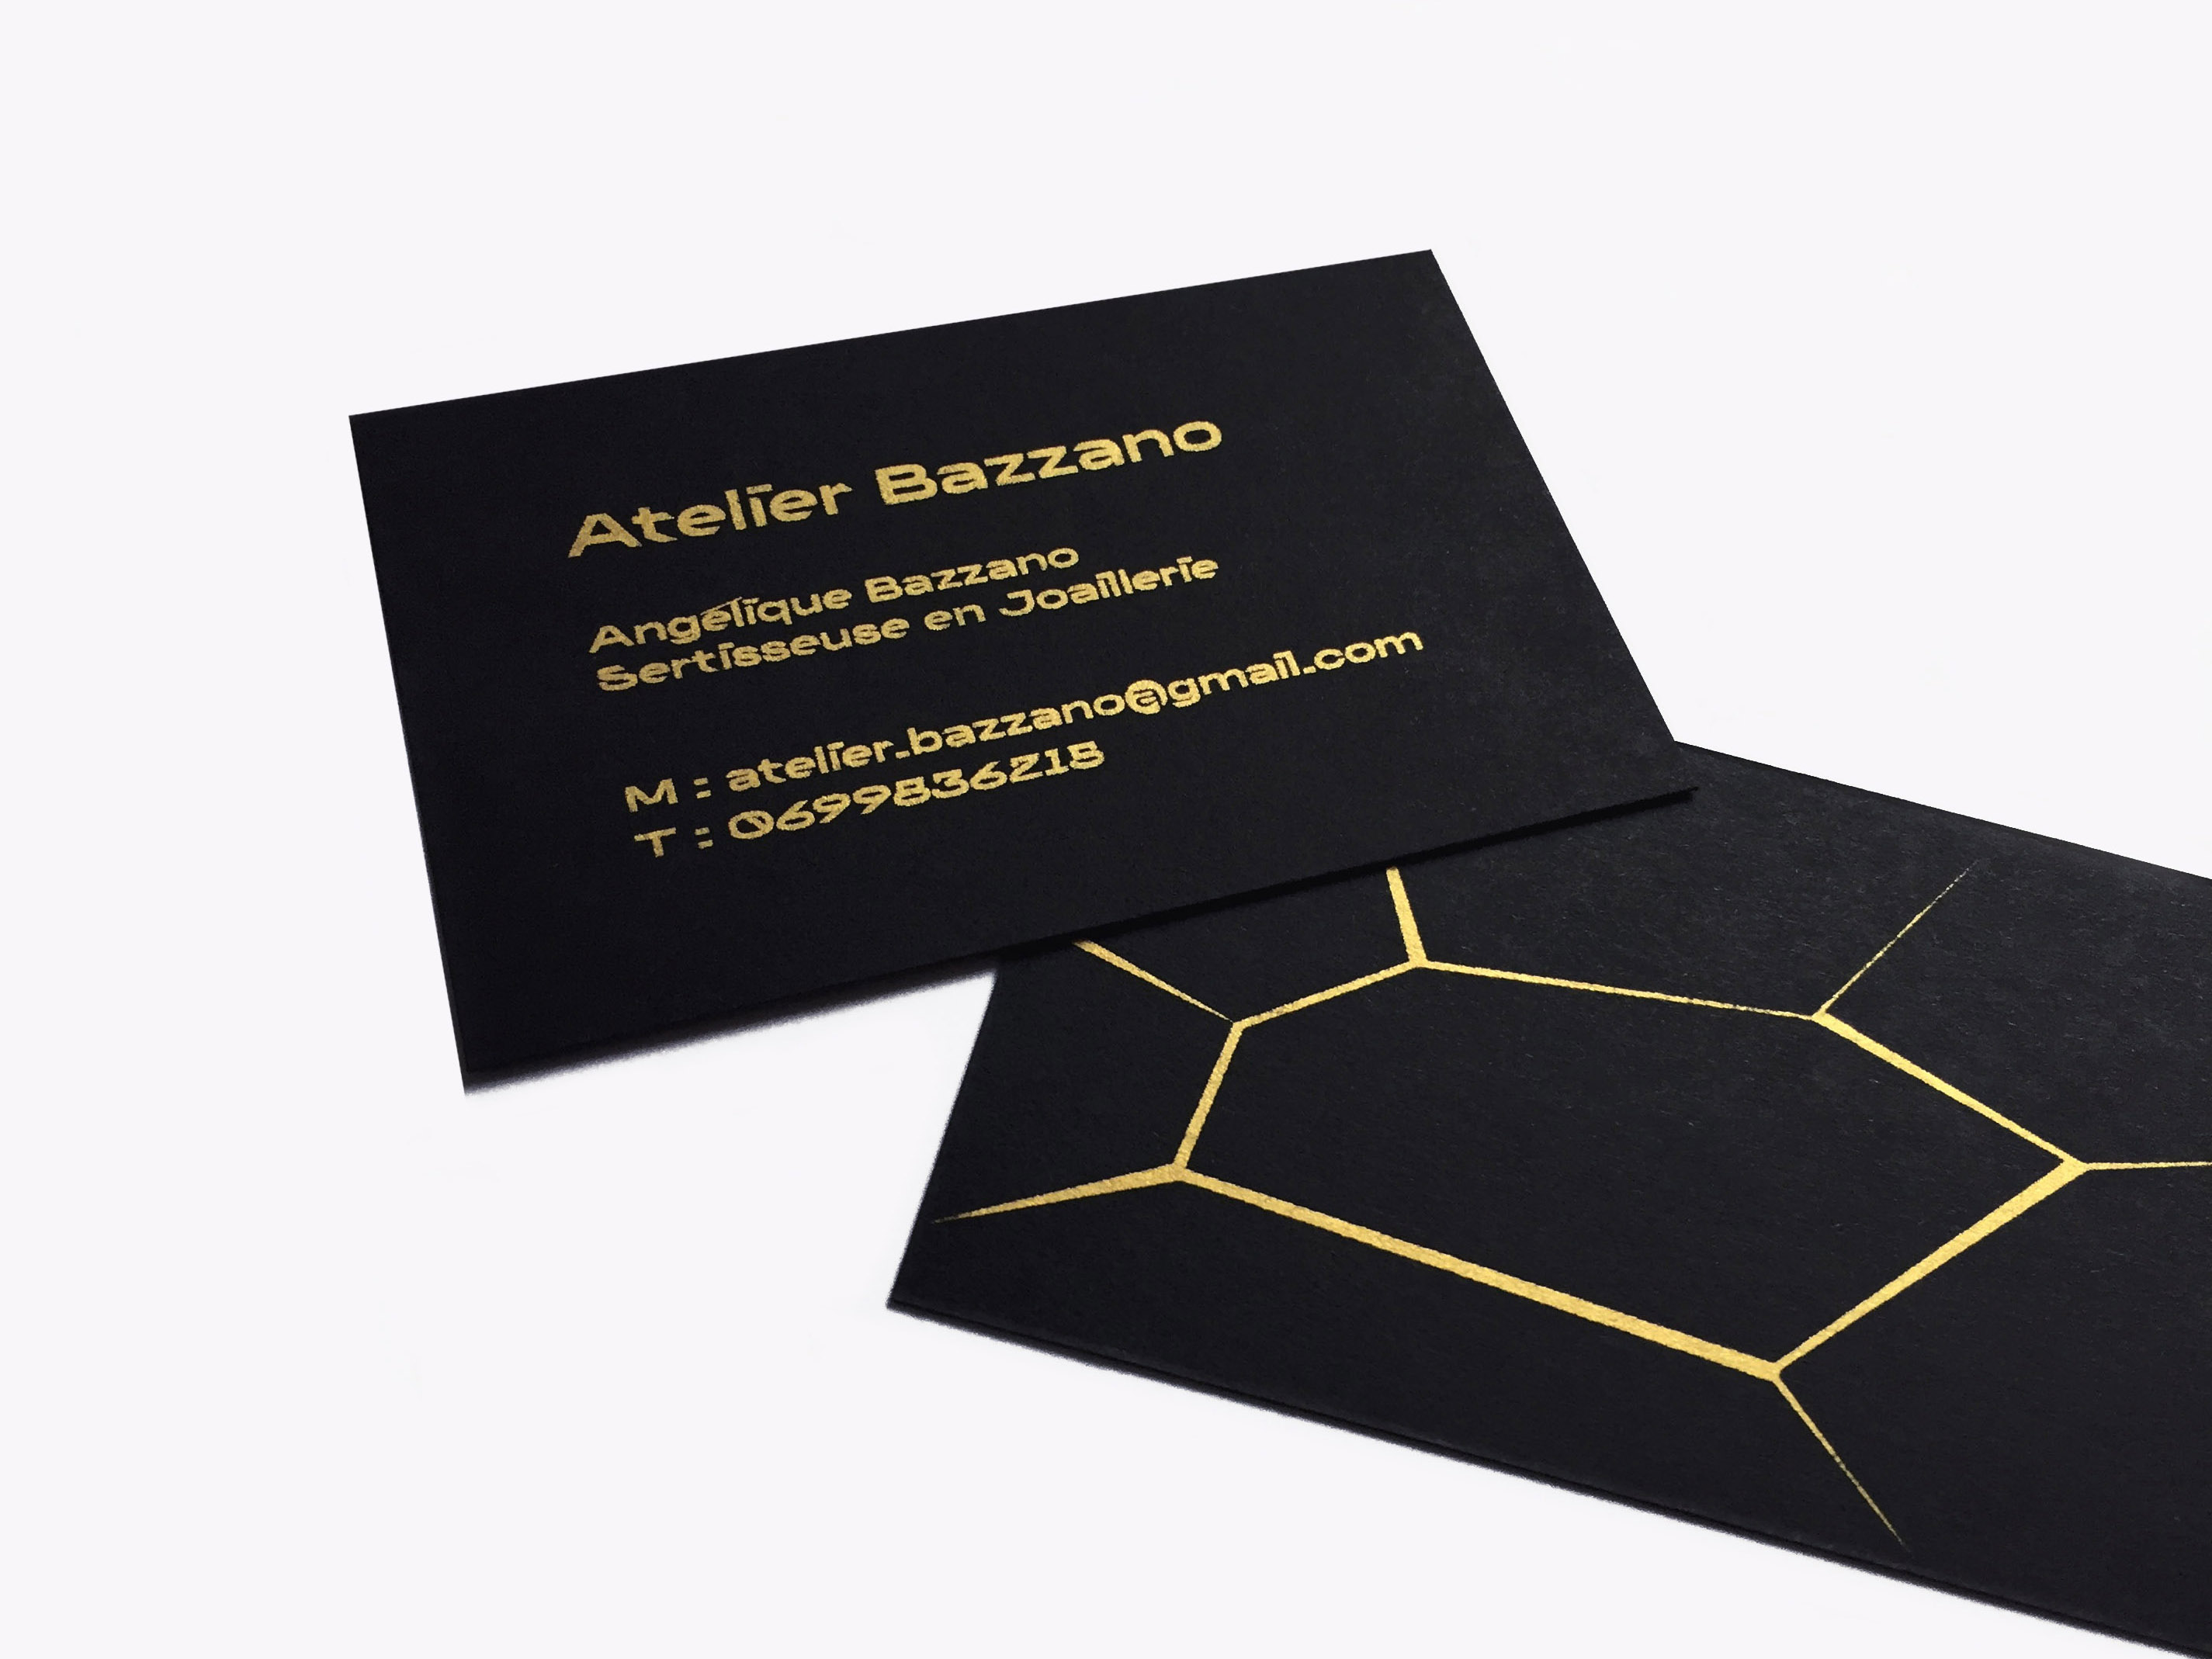 a-bazzano-business-cards